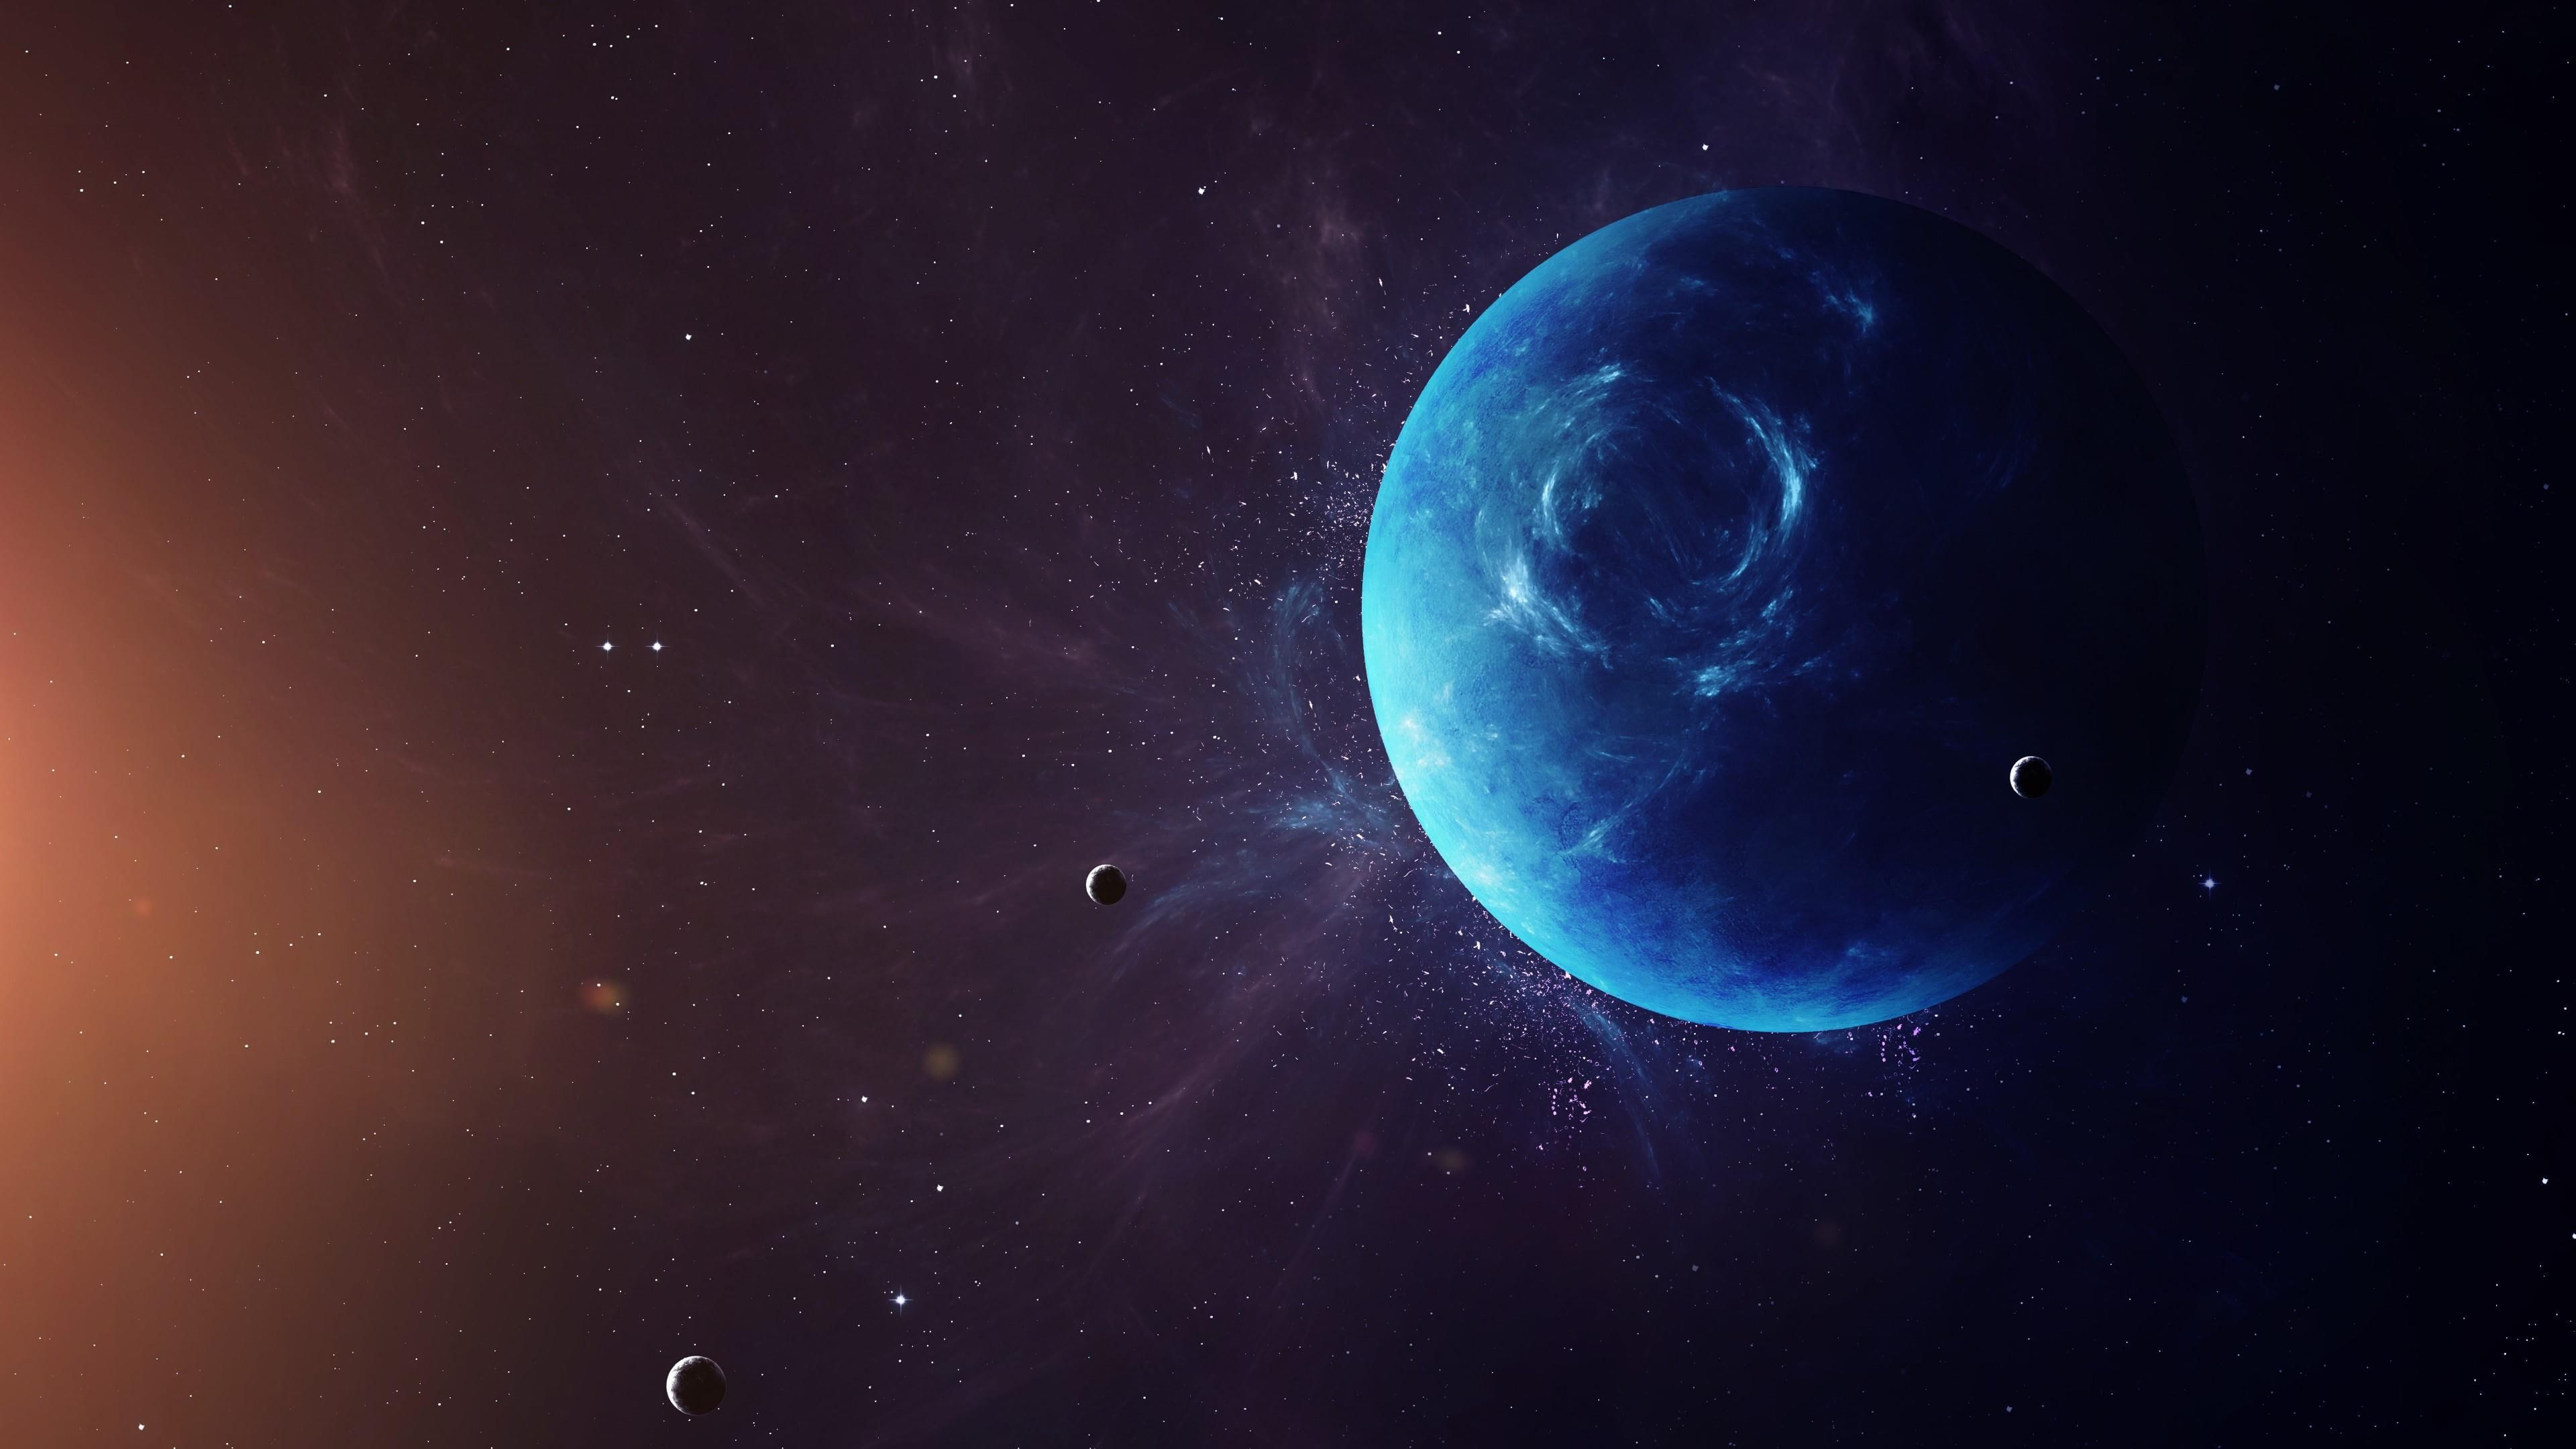 Neptune Planet Moon Space Solar System 4k Wallpaper Hdwallpaper Desktop Solar System Wallpaper Nebula Wallpaper Planets